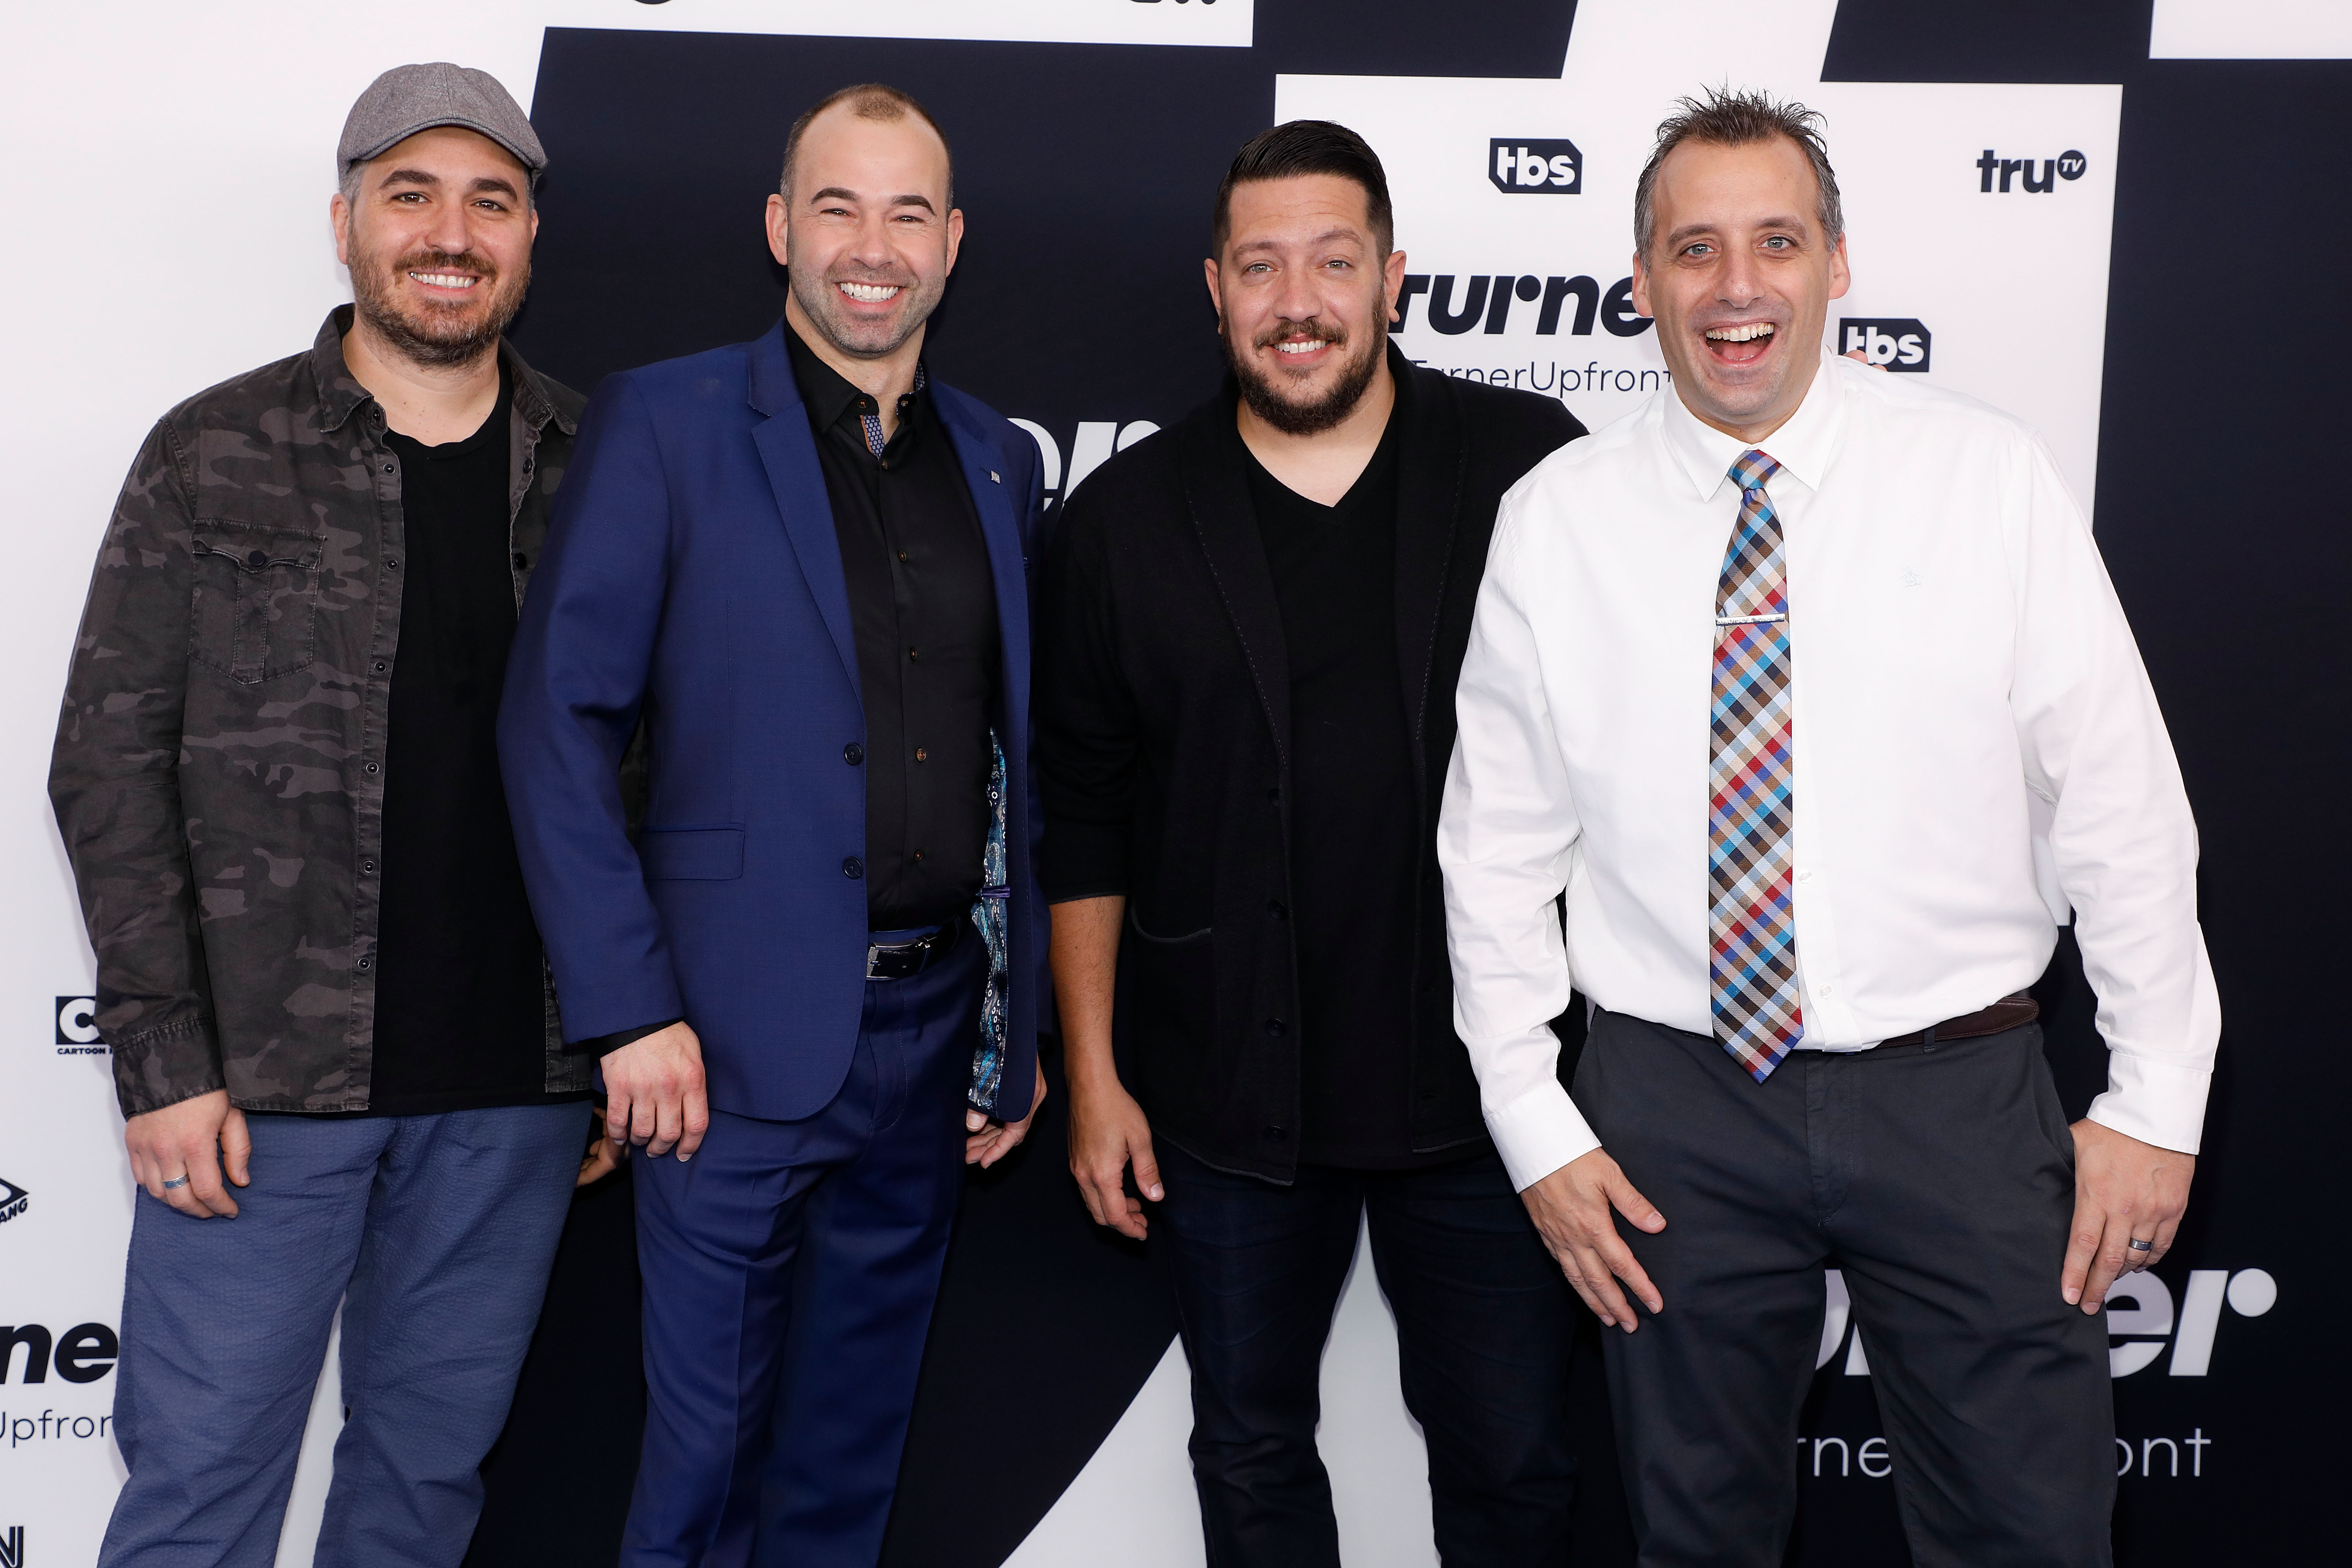 impractical jokers s07e01 dailymotion